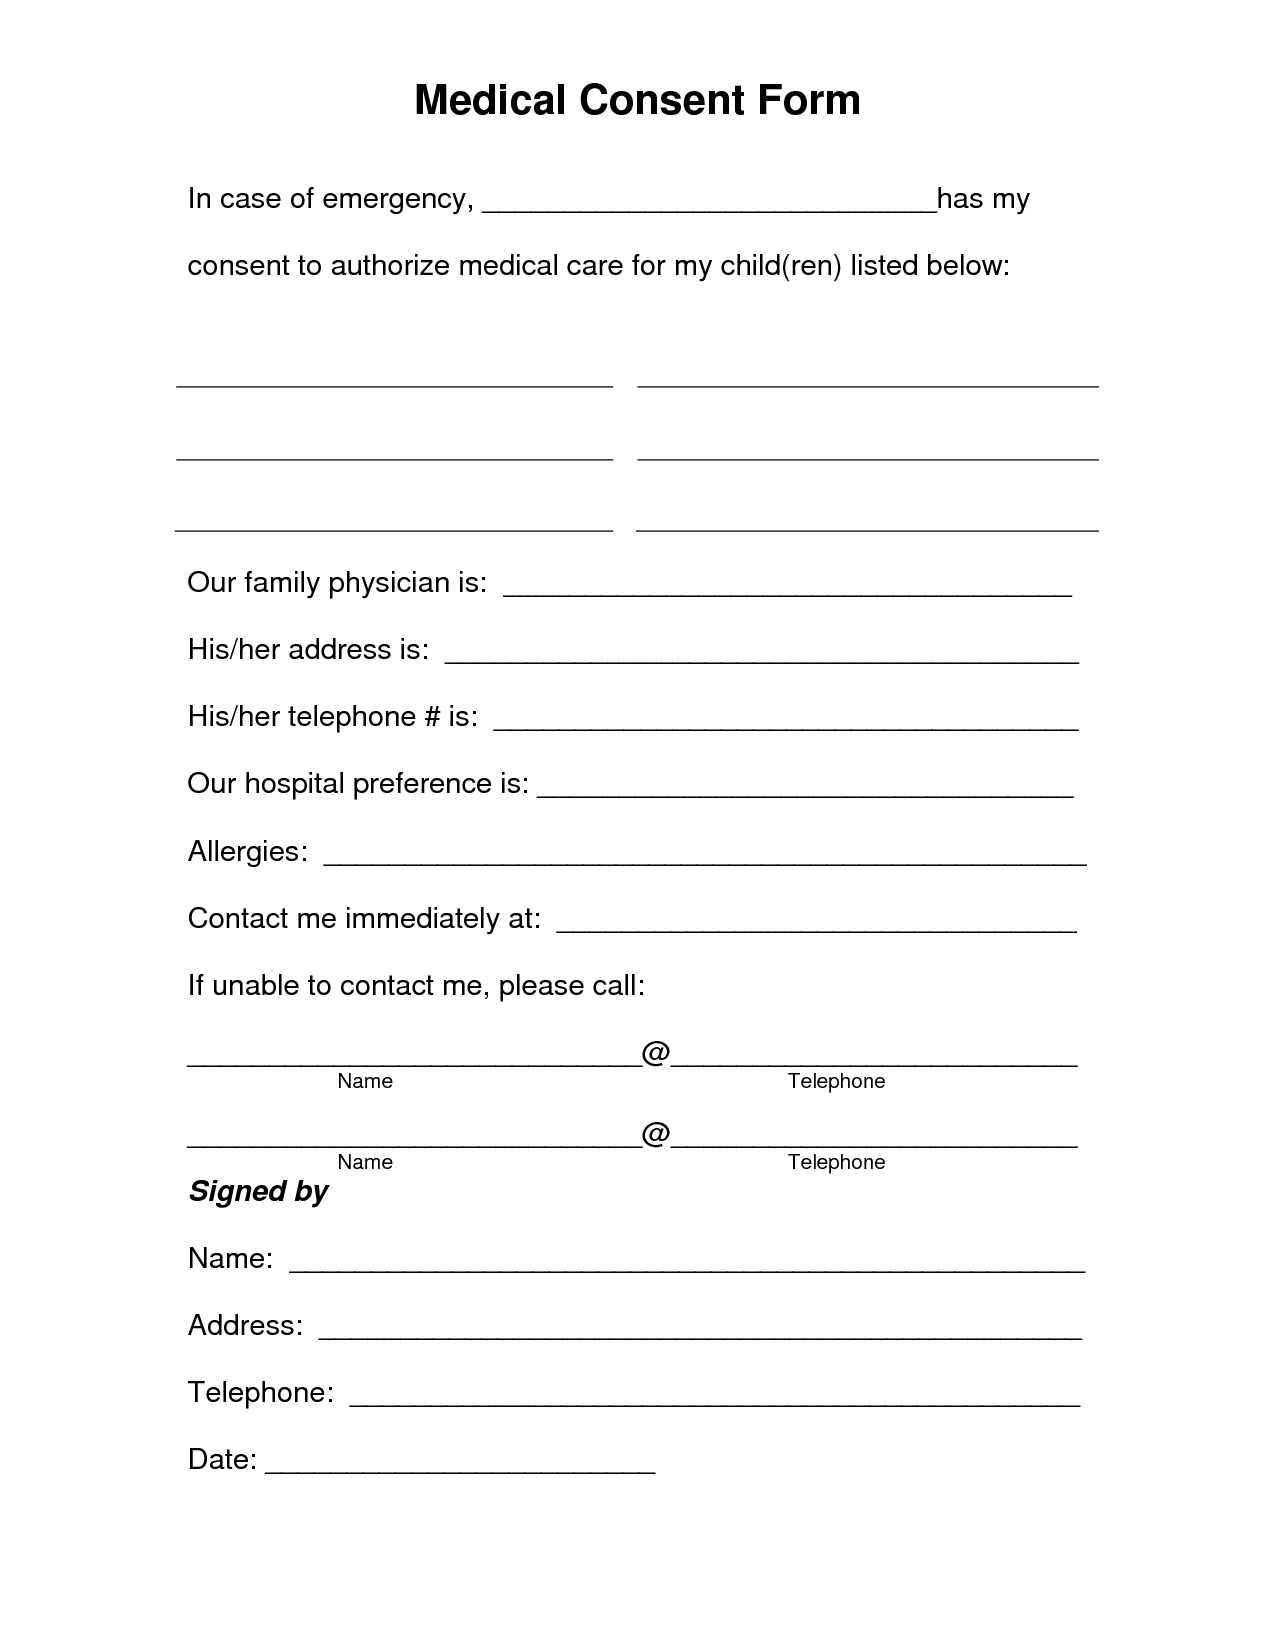 Free printable medical consent form free medical consent form free printable medical consent form free medical consent form altavistaventures Choice Image